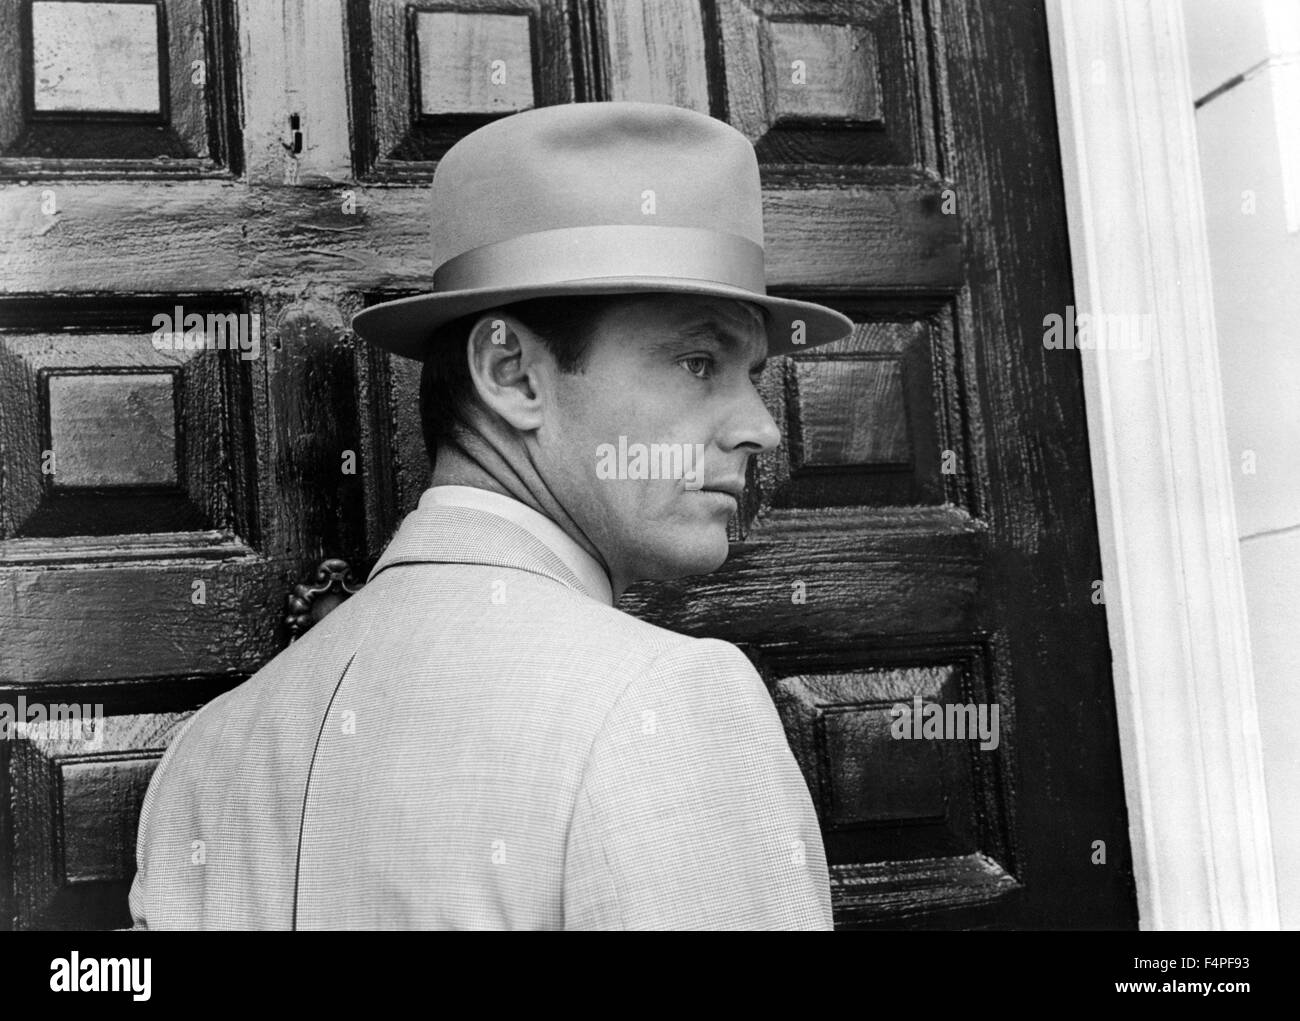 Chinatown Film High Resolution Stock Photography And Images Alamy